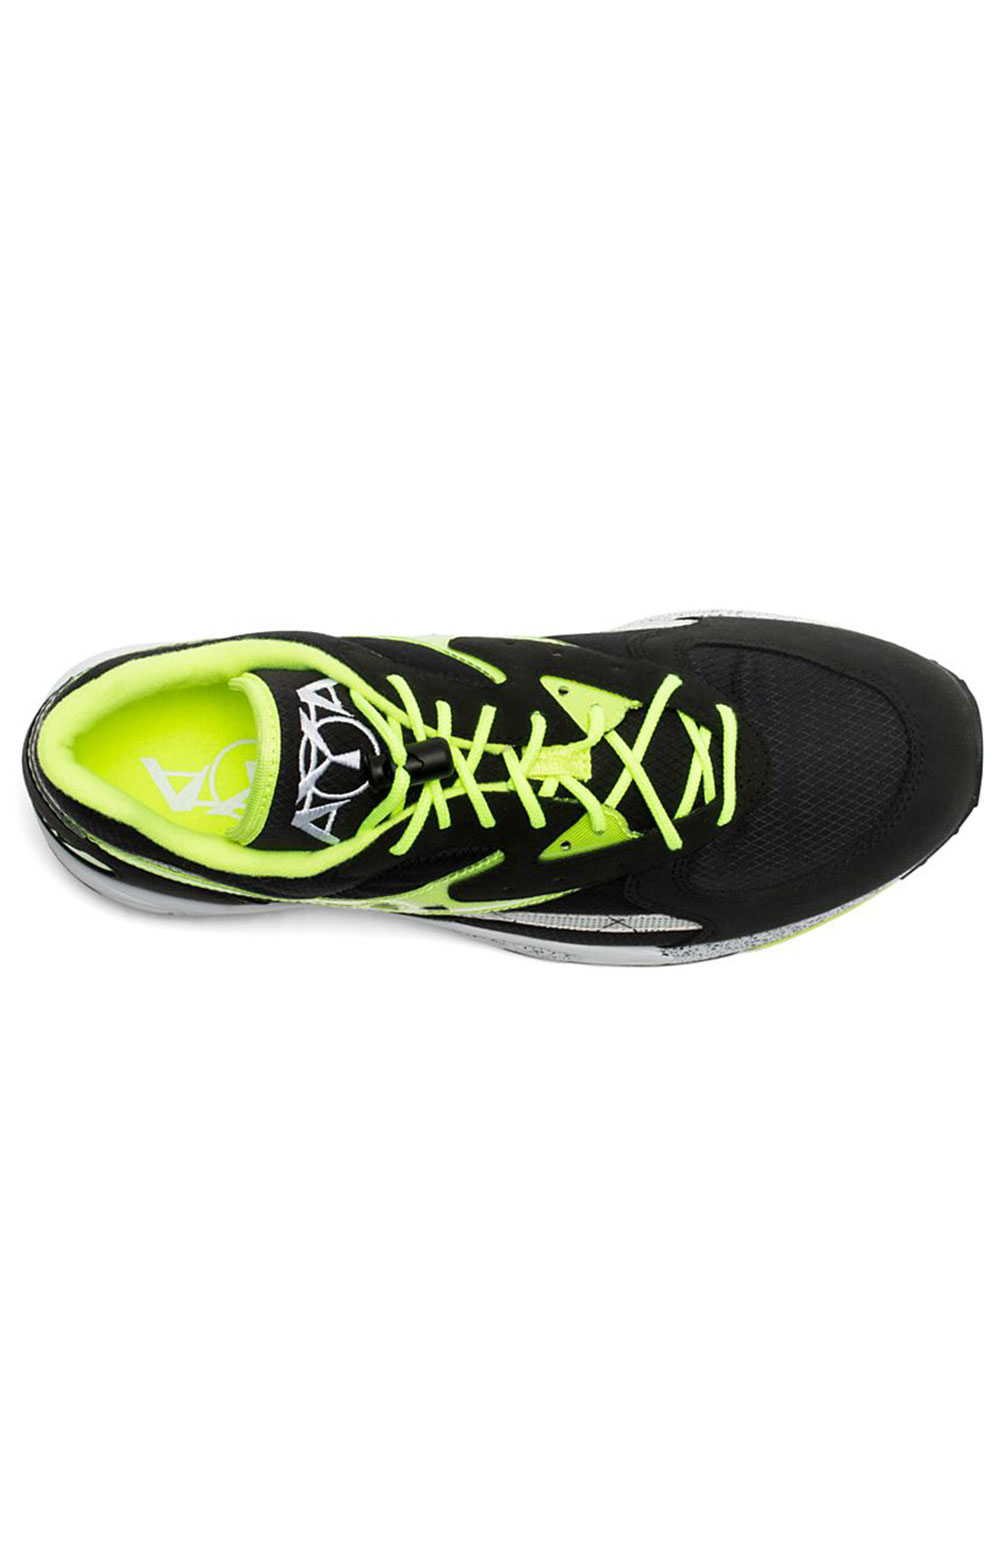 (S70460-3) Aya Shoe - Black/Neon 3